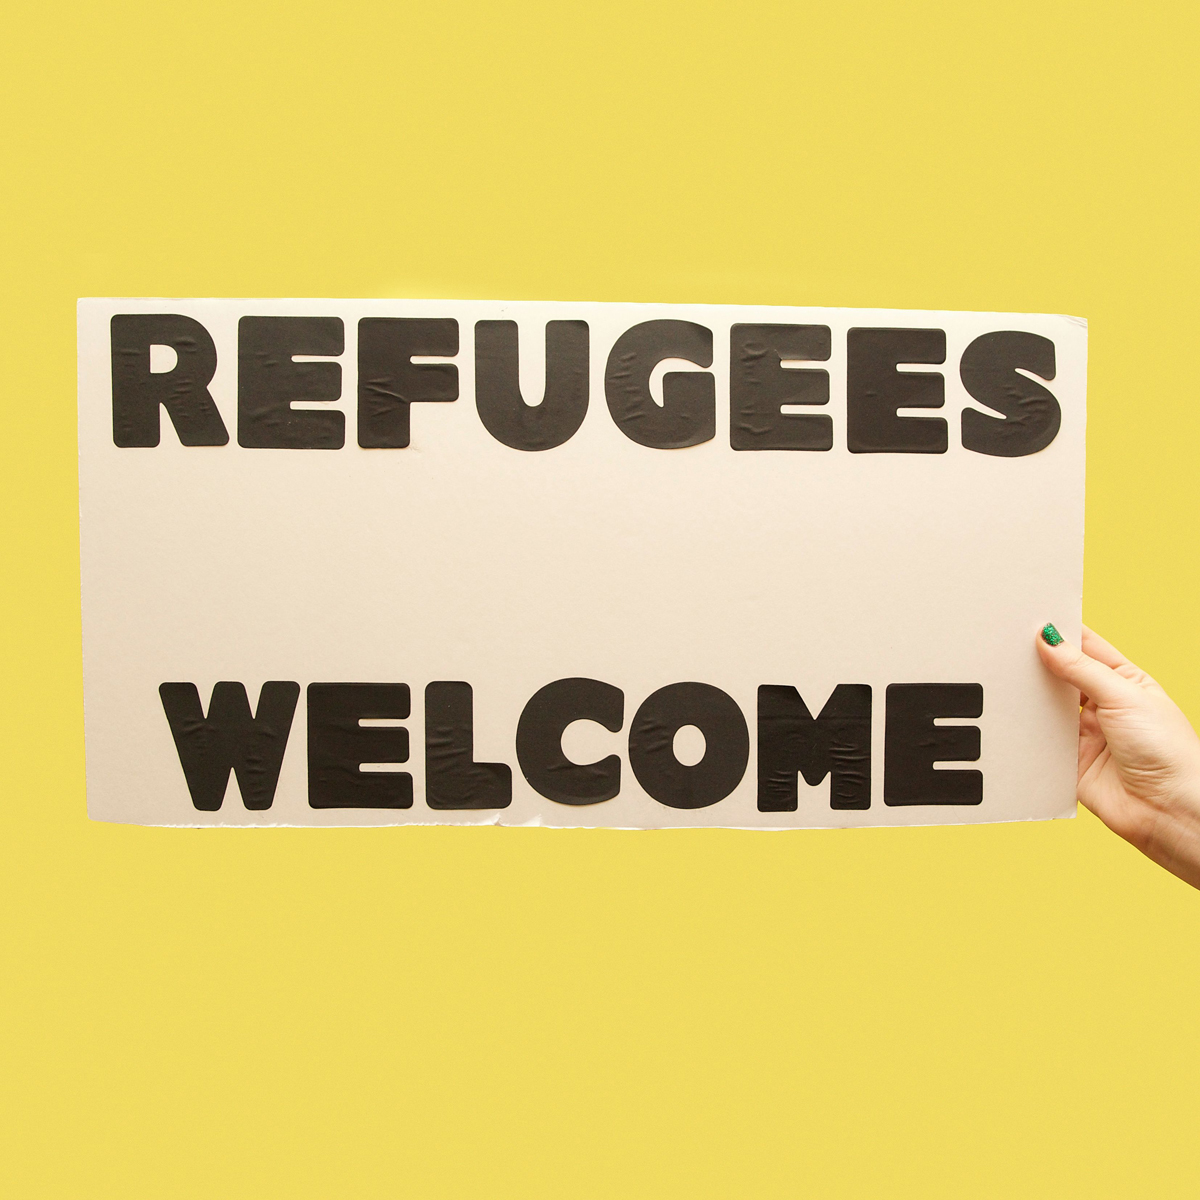 45 Protest Signs_Brandon and Olivia Locher_29_RefugeesWelcome